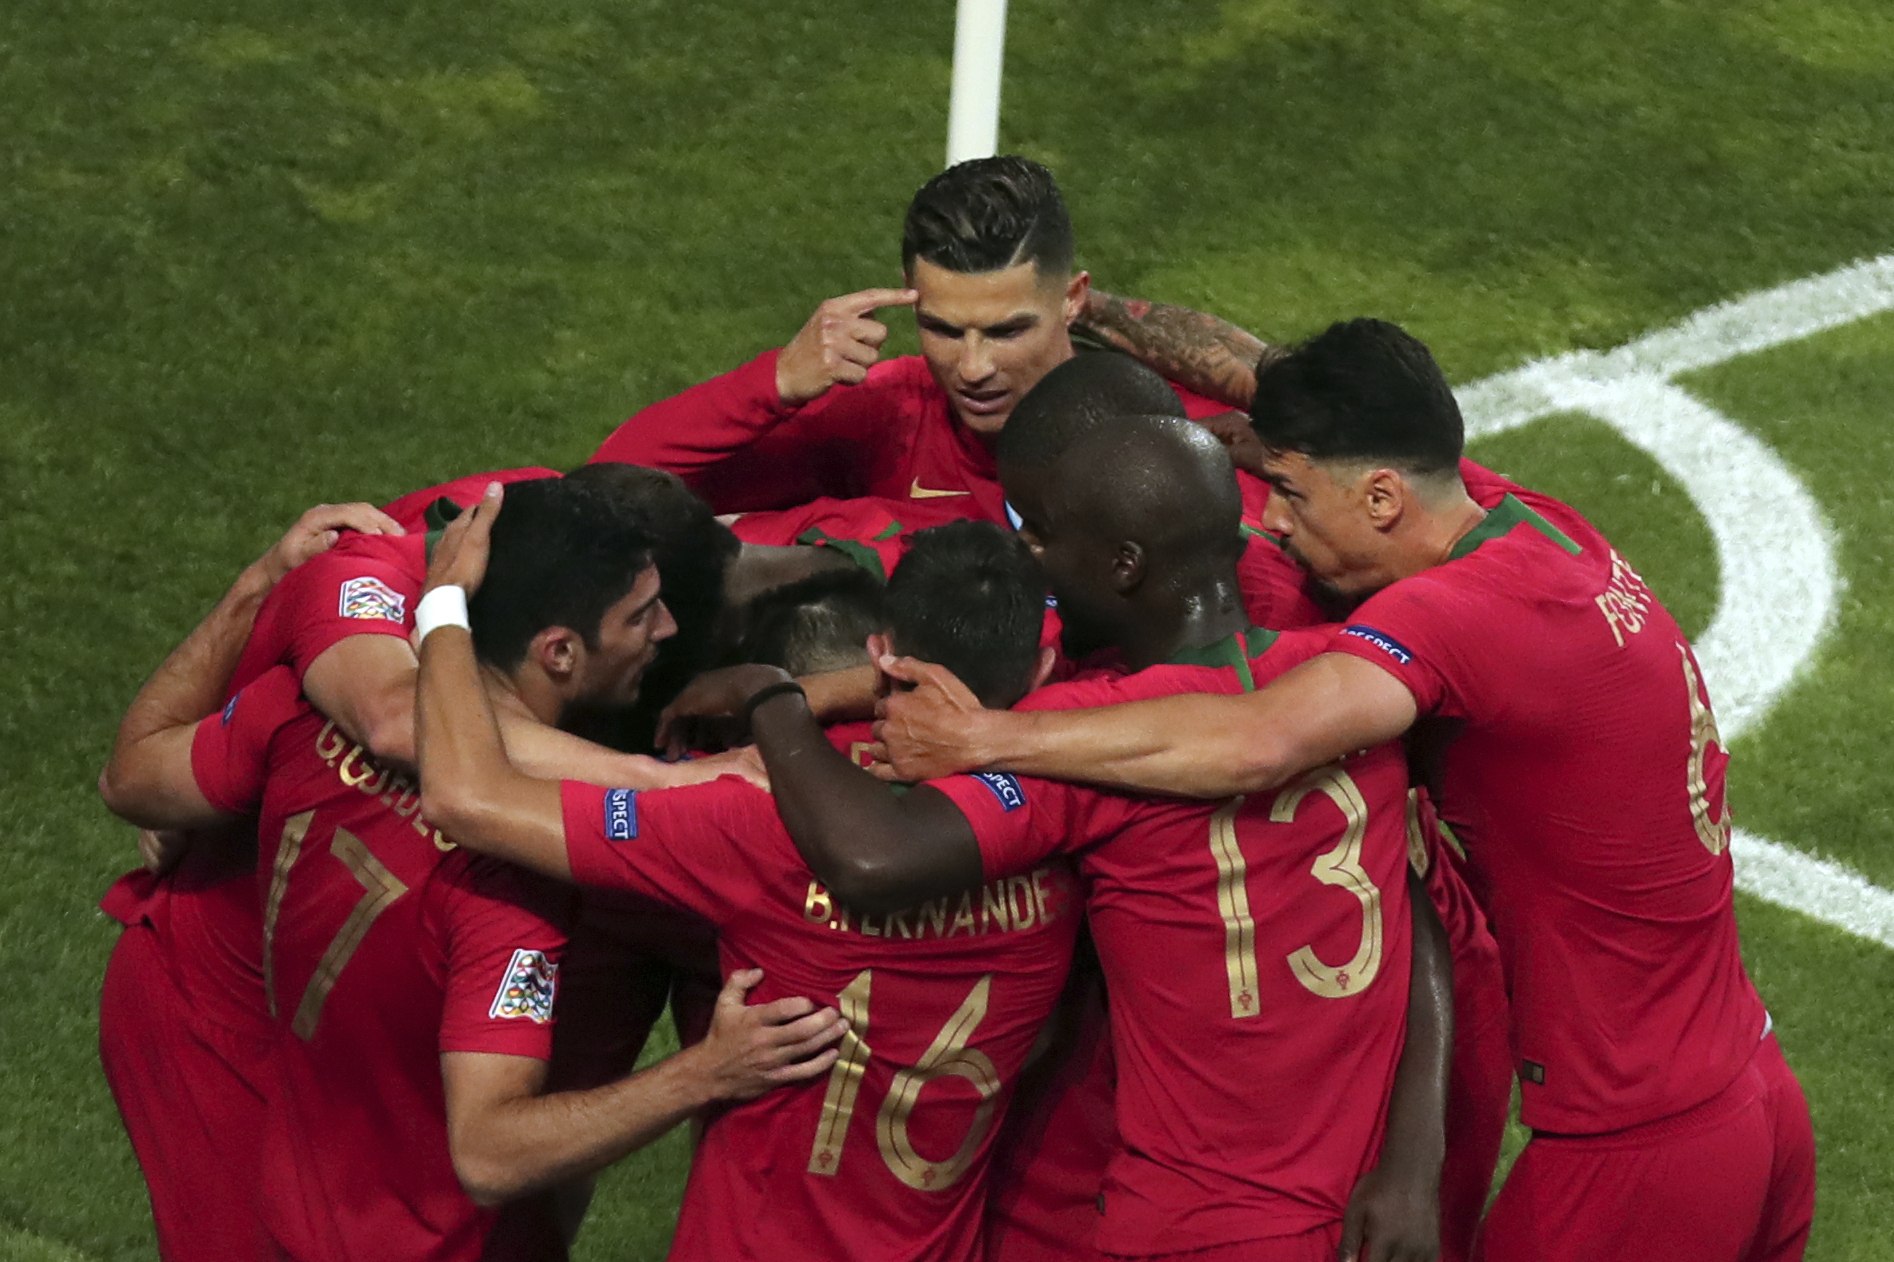 Cristiano Ronaldo Portugal Beat Netherlands To Win Uefa Nations League Final Bleacher Report Latest News Videos And Highlights